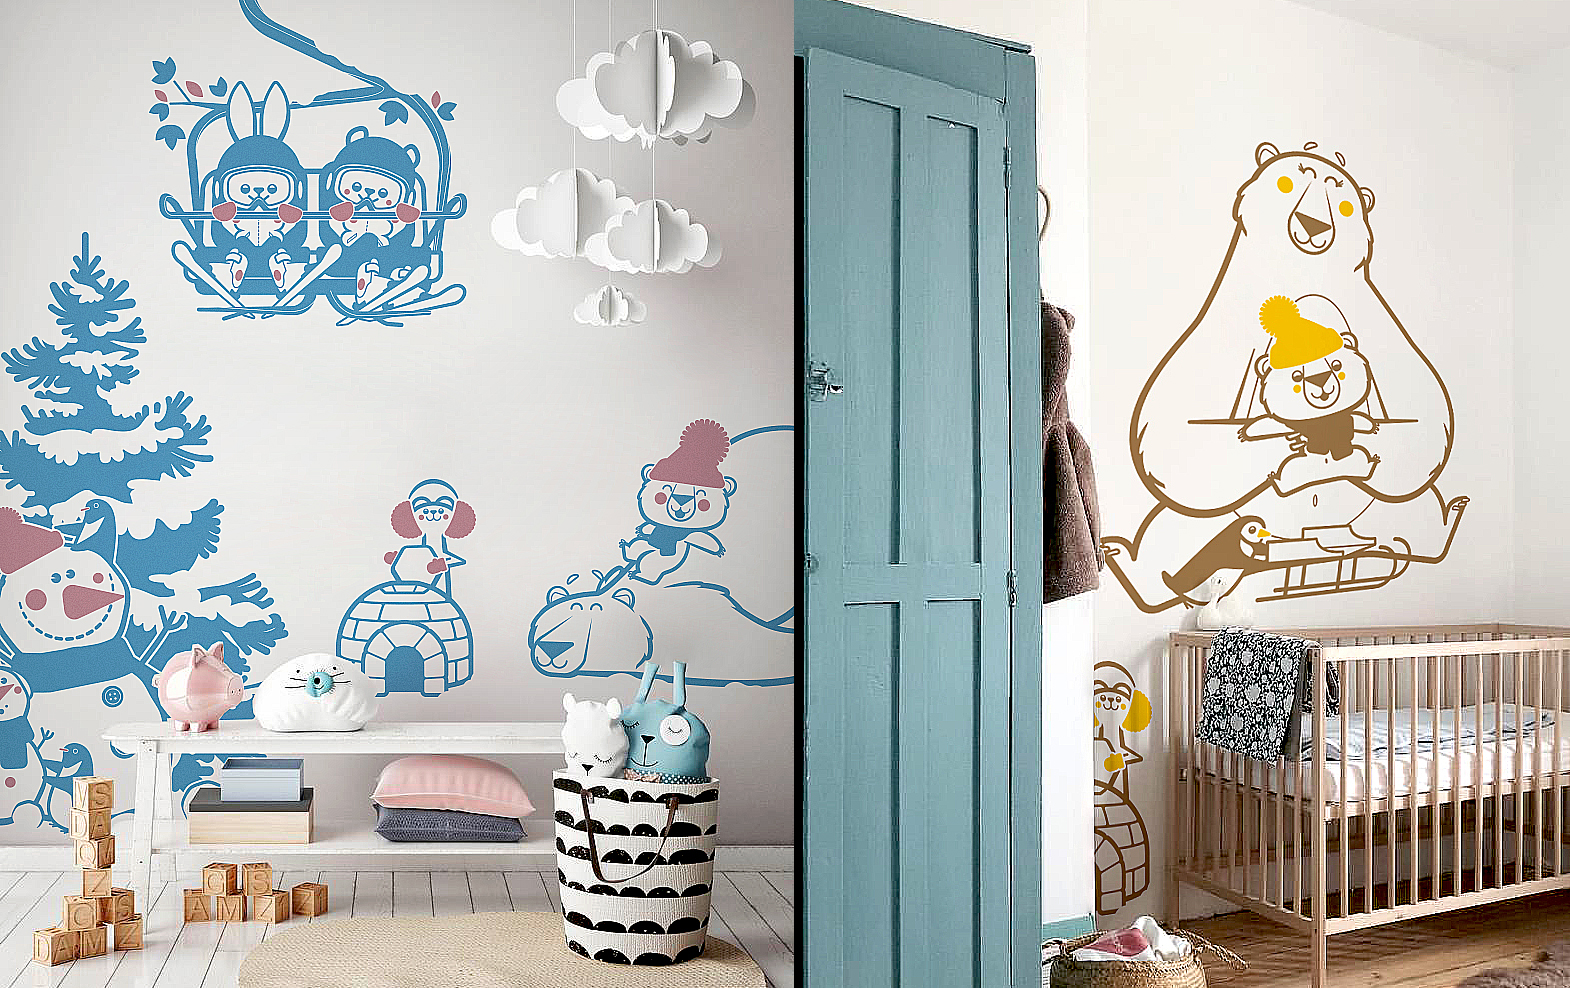 arctic animals wall stickers by E-Glue design